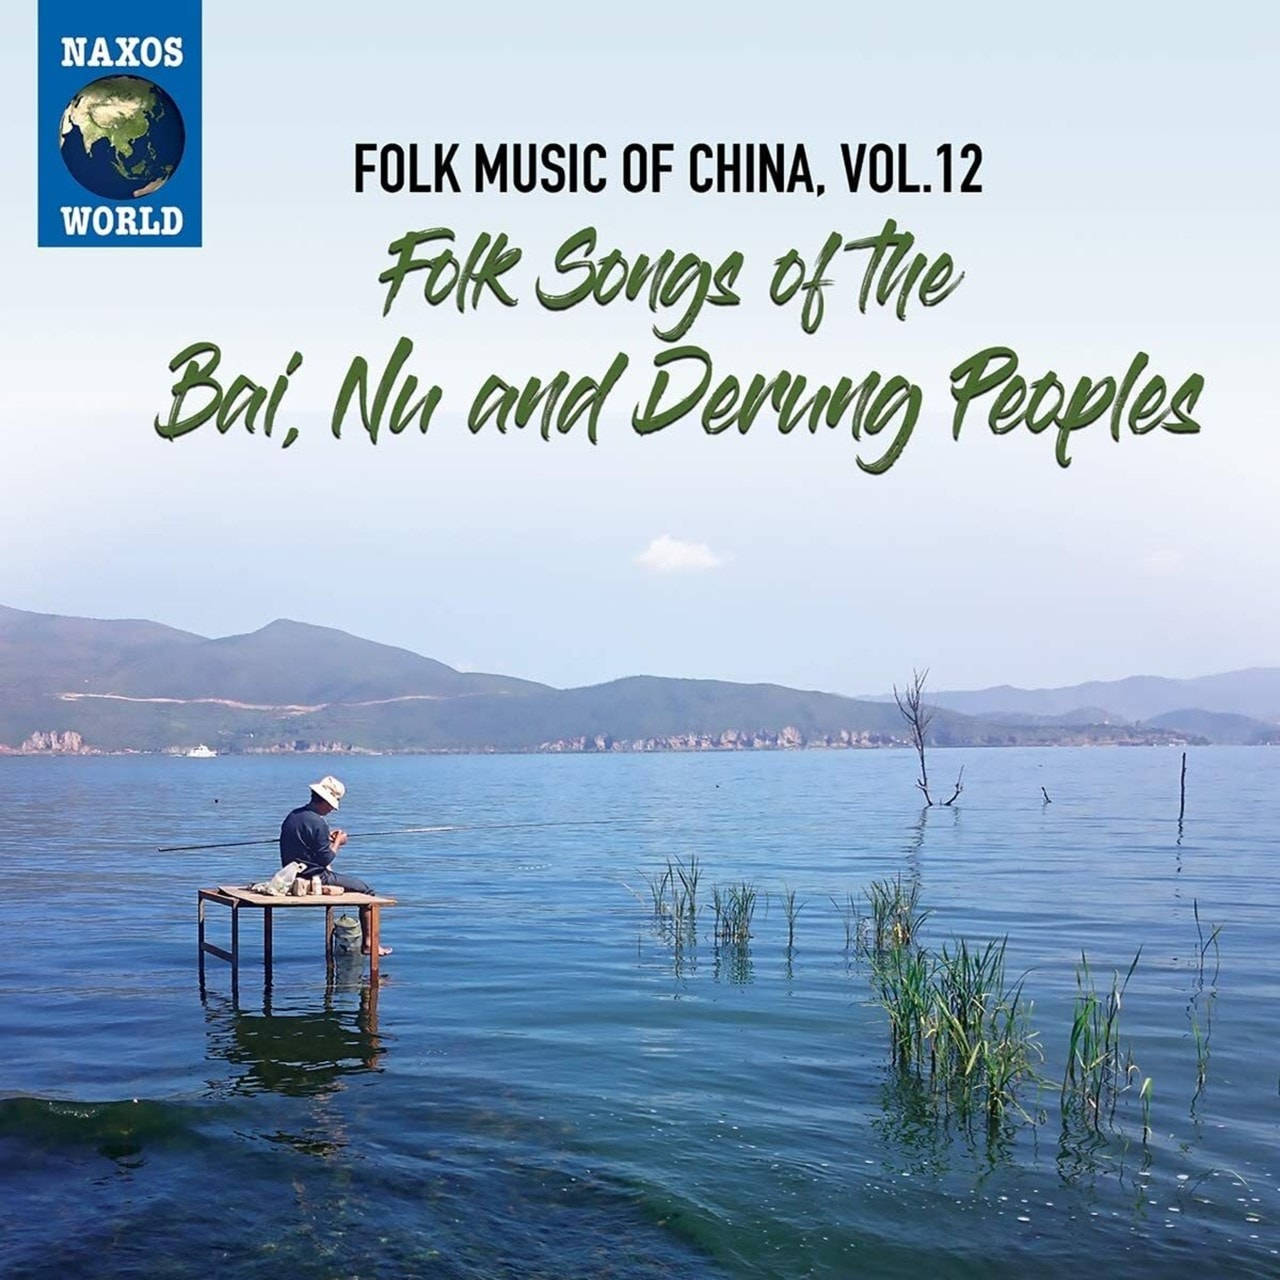 Folk Music of China: Folk Songs of the Bai, Nu and Derung Peoples - Volume 12 - 1